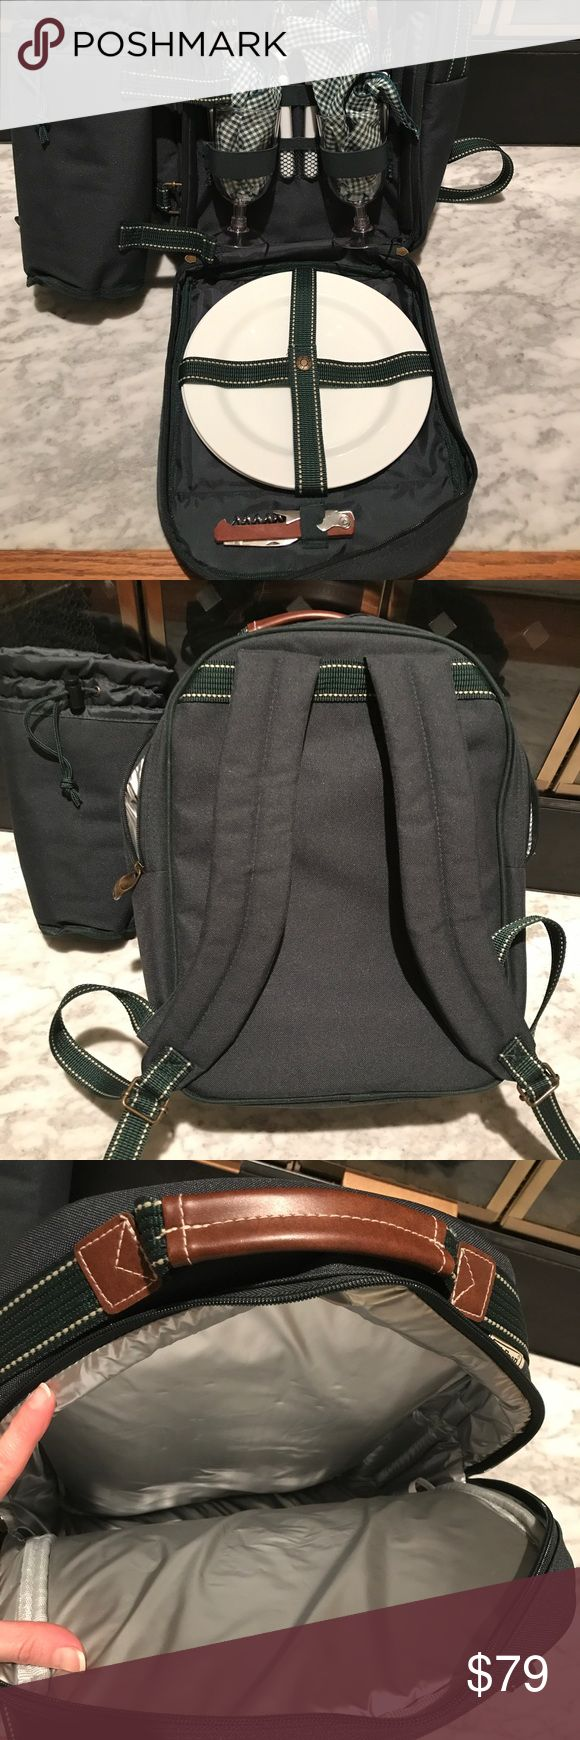 L. L. Bean Backpack picnic Hunter Green New without tags! Has everything you need for a romantic picnic hike in the woods! L.L. Bean Bags Backpacks